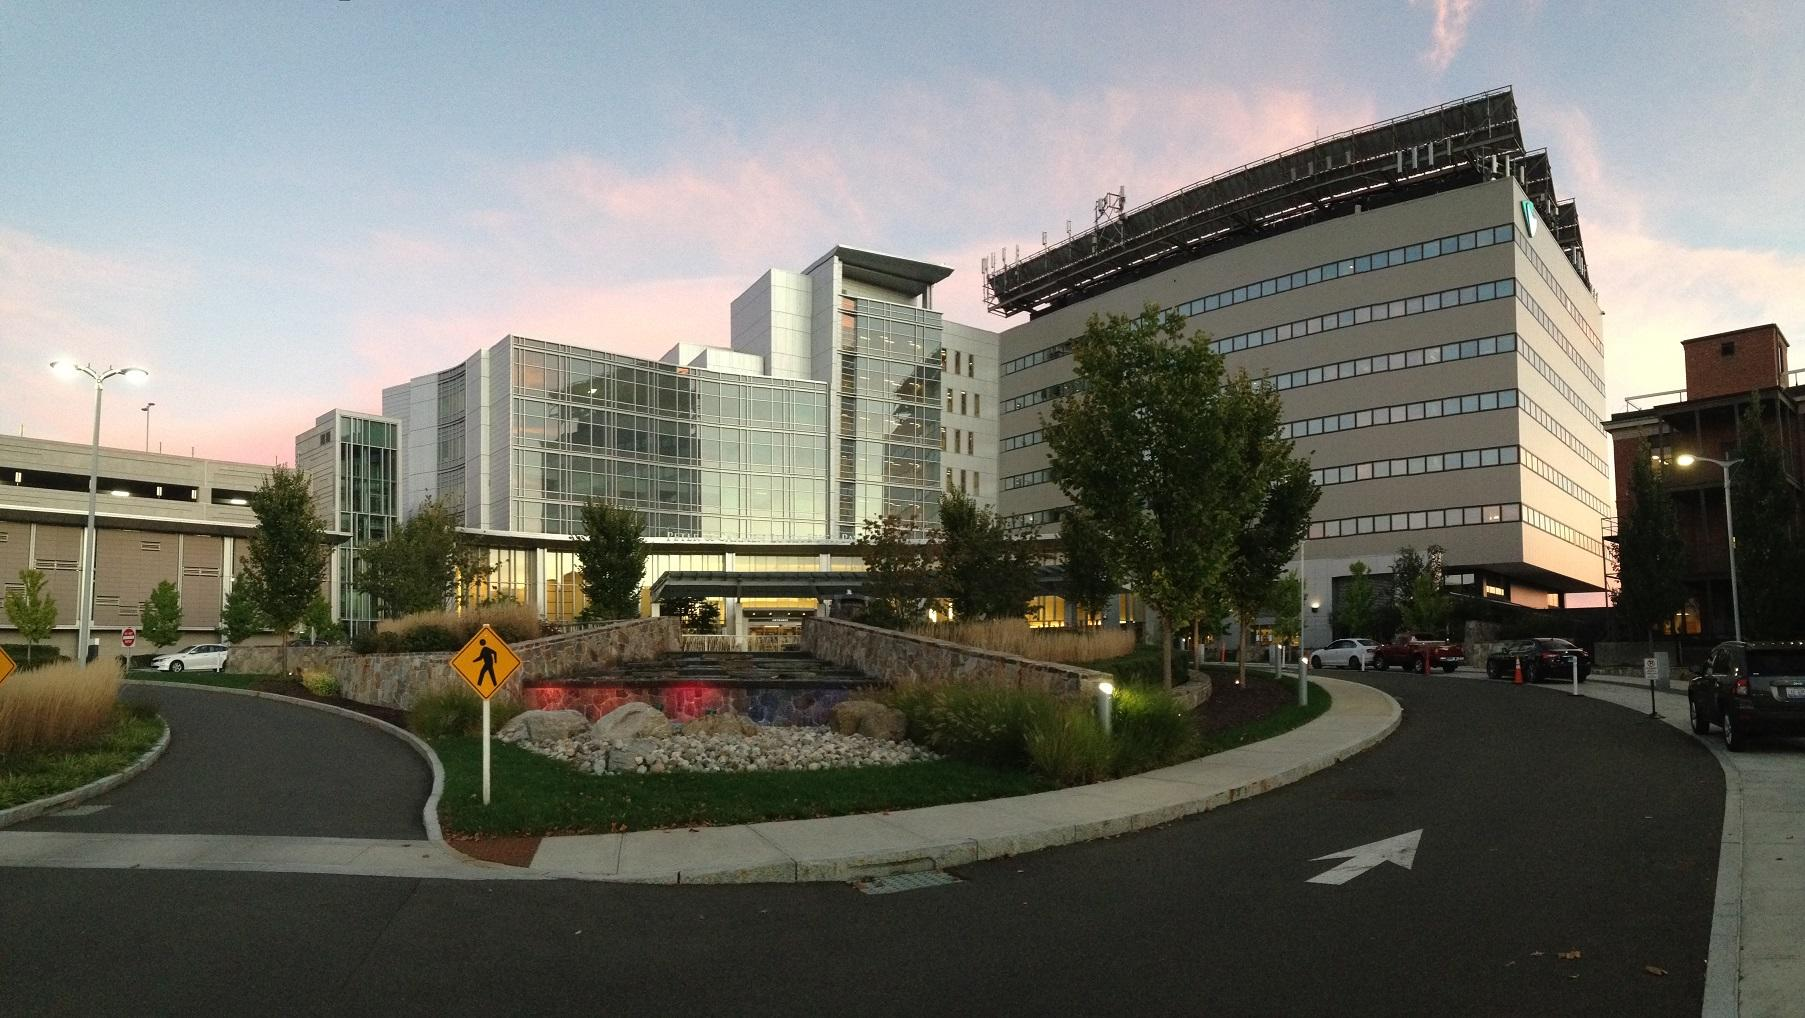 Outside view of Danbury Hospital